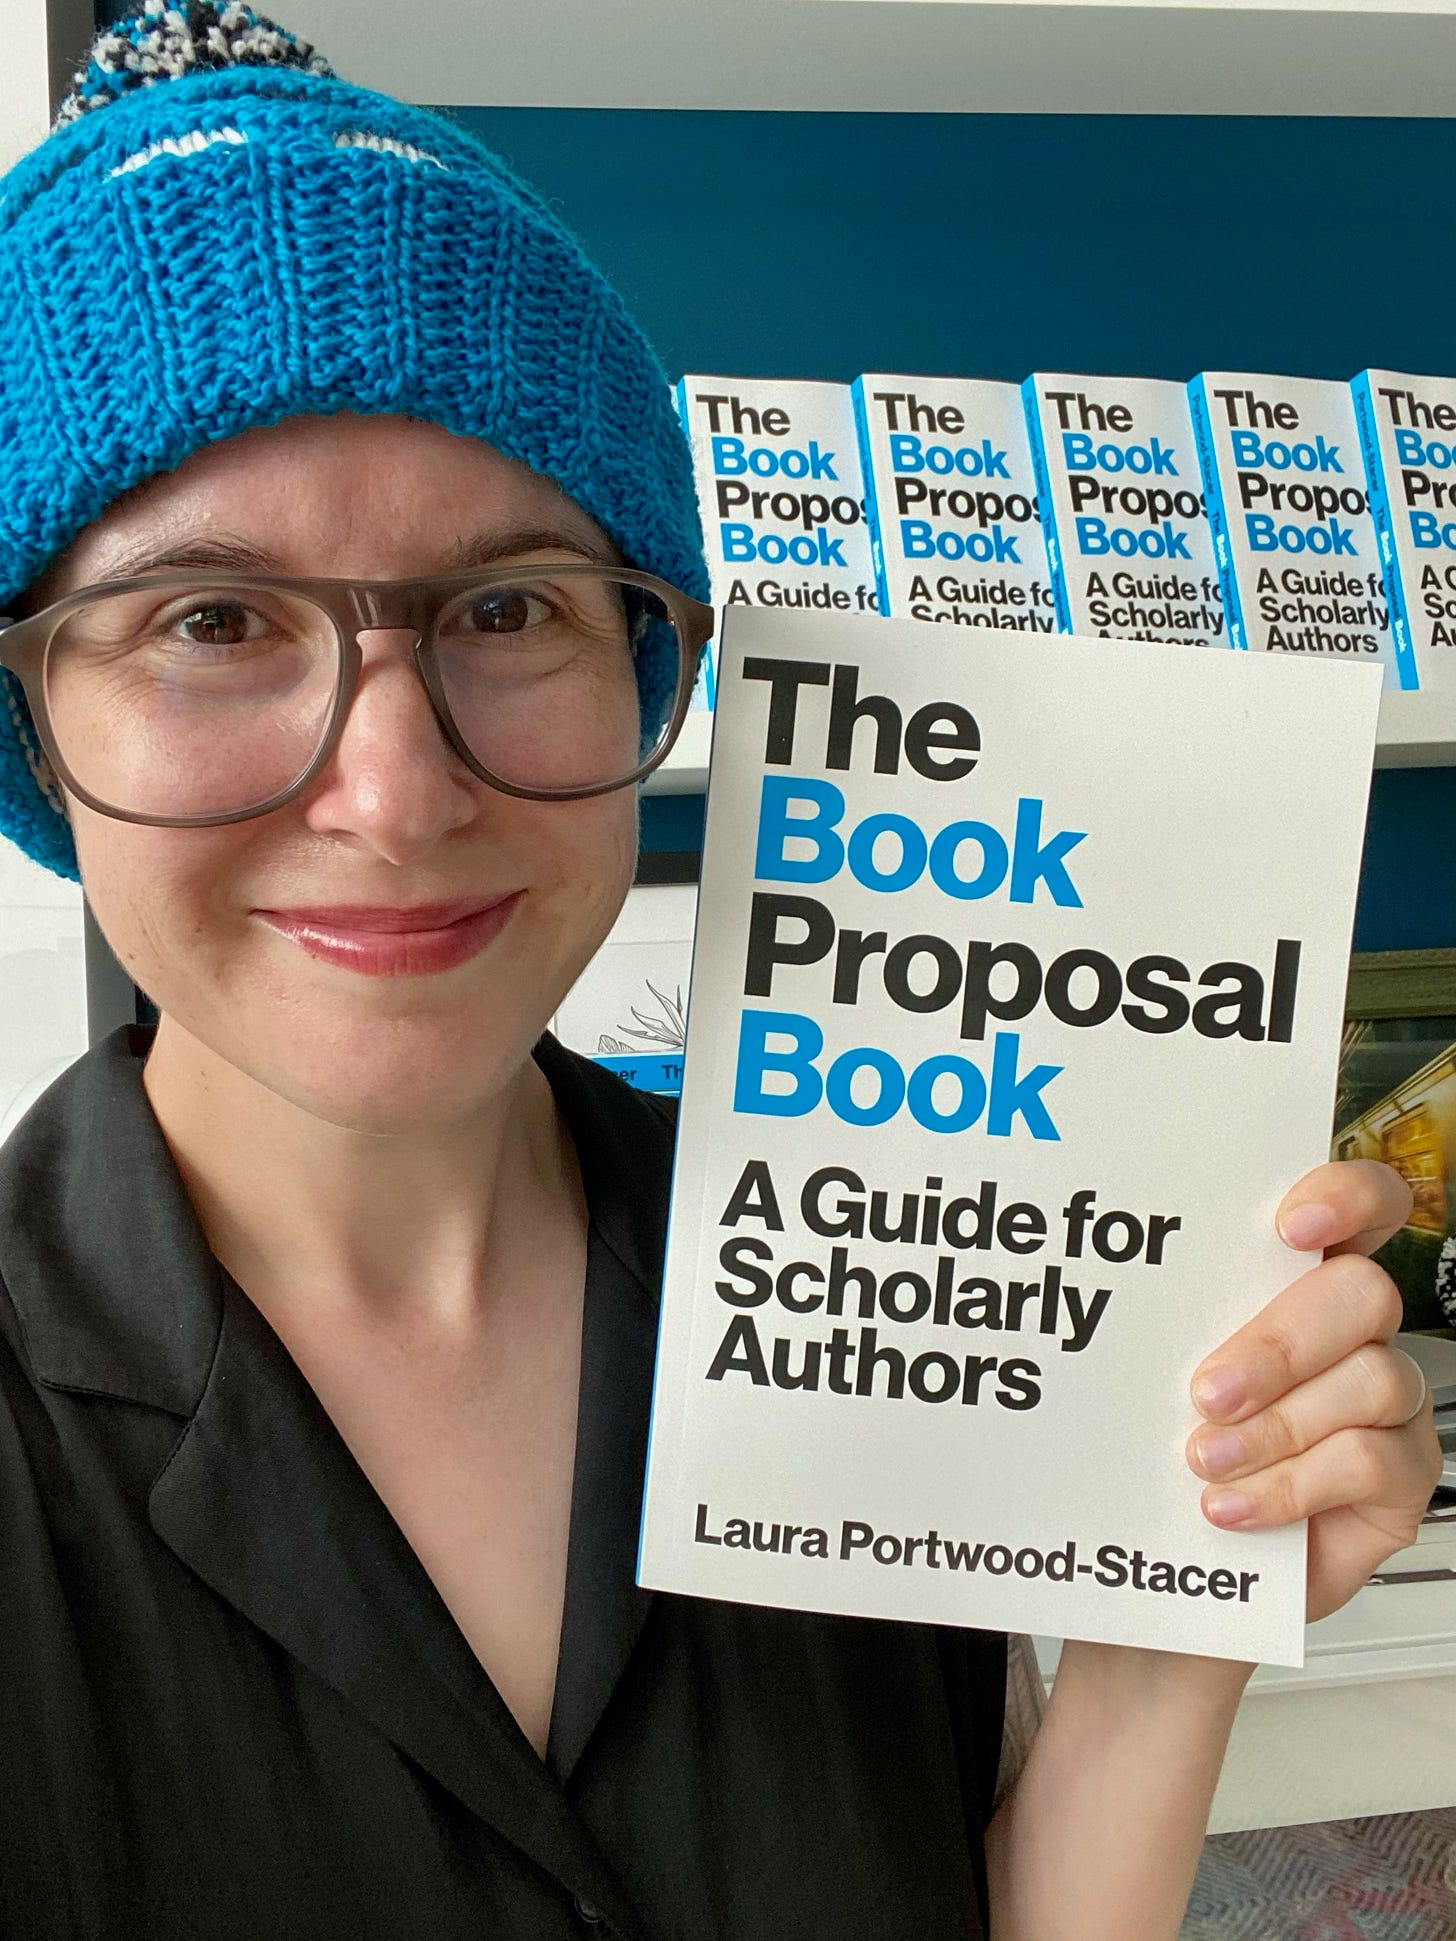 A photo of me holding up The Book Proposal Book and wearing a knitted cap in colors that match the book's cover (bright blue, white, and black)